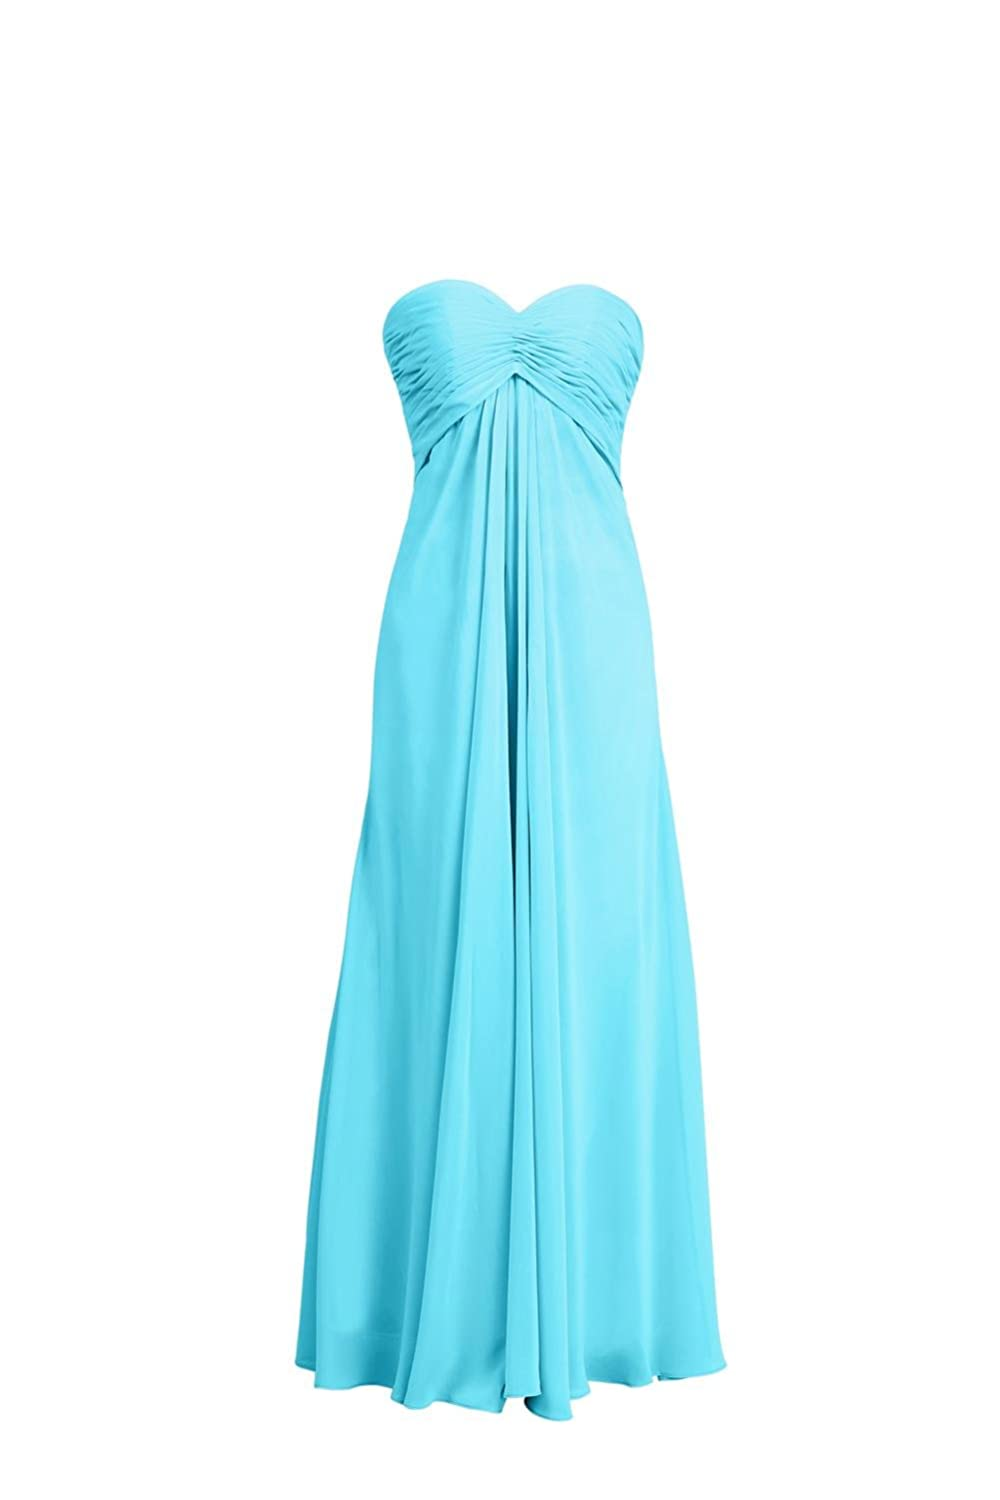 YiYaDawn Women's Backless Prom Party Dress Long Evening Gown